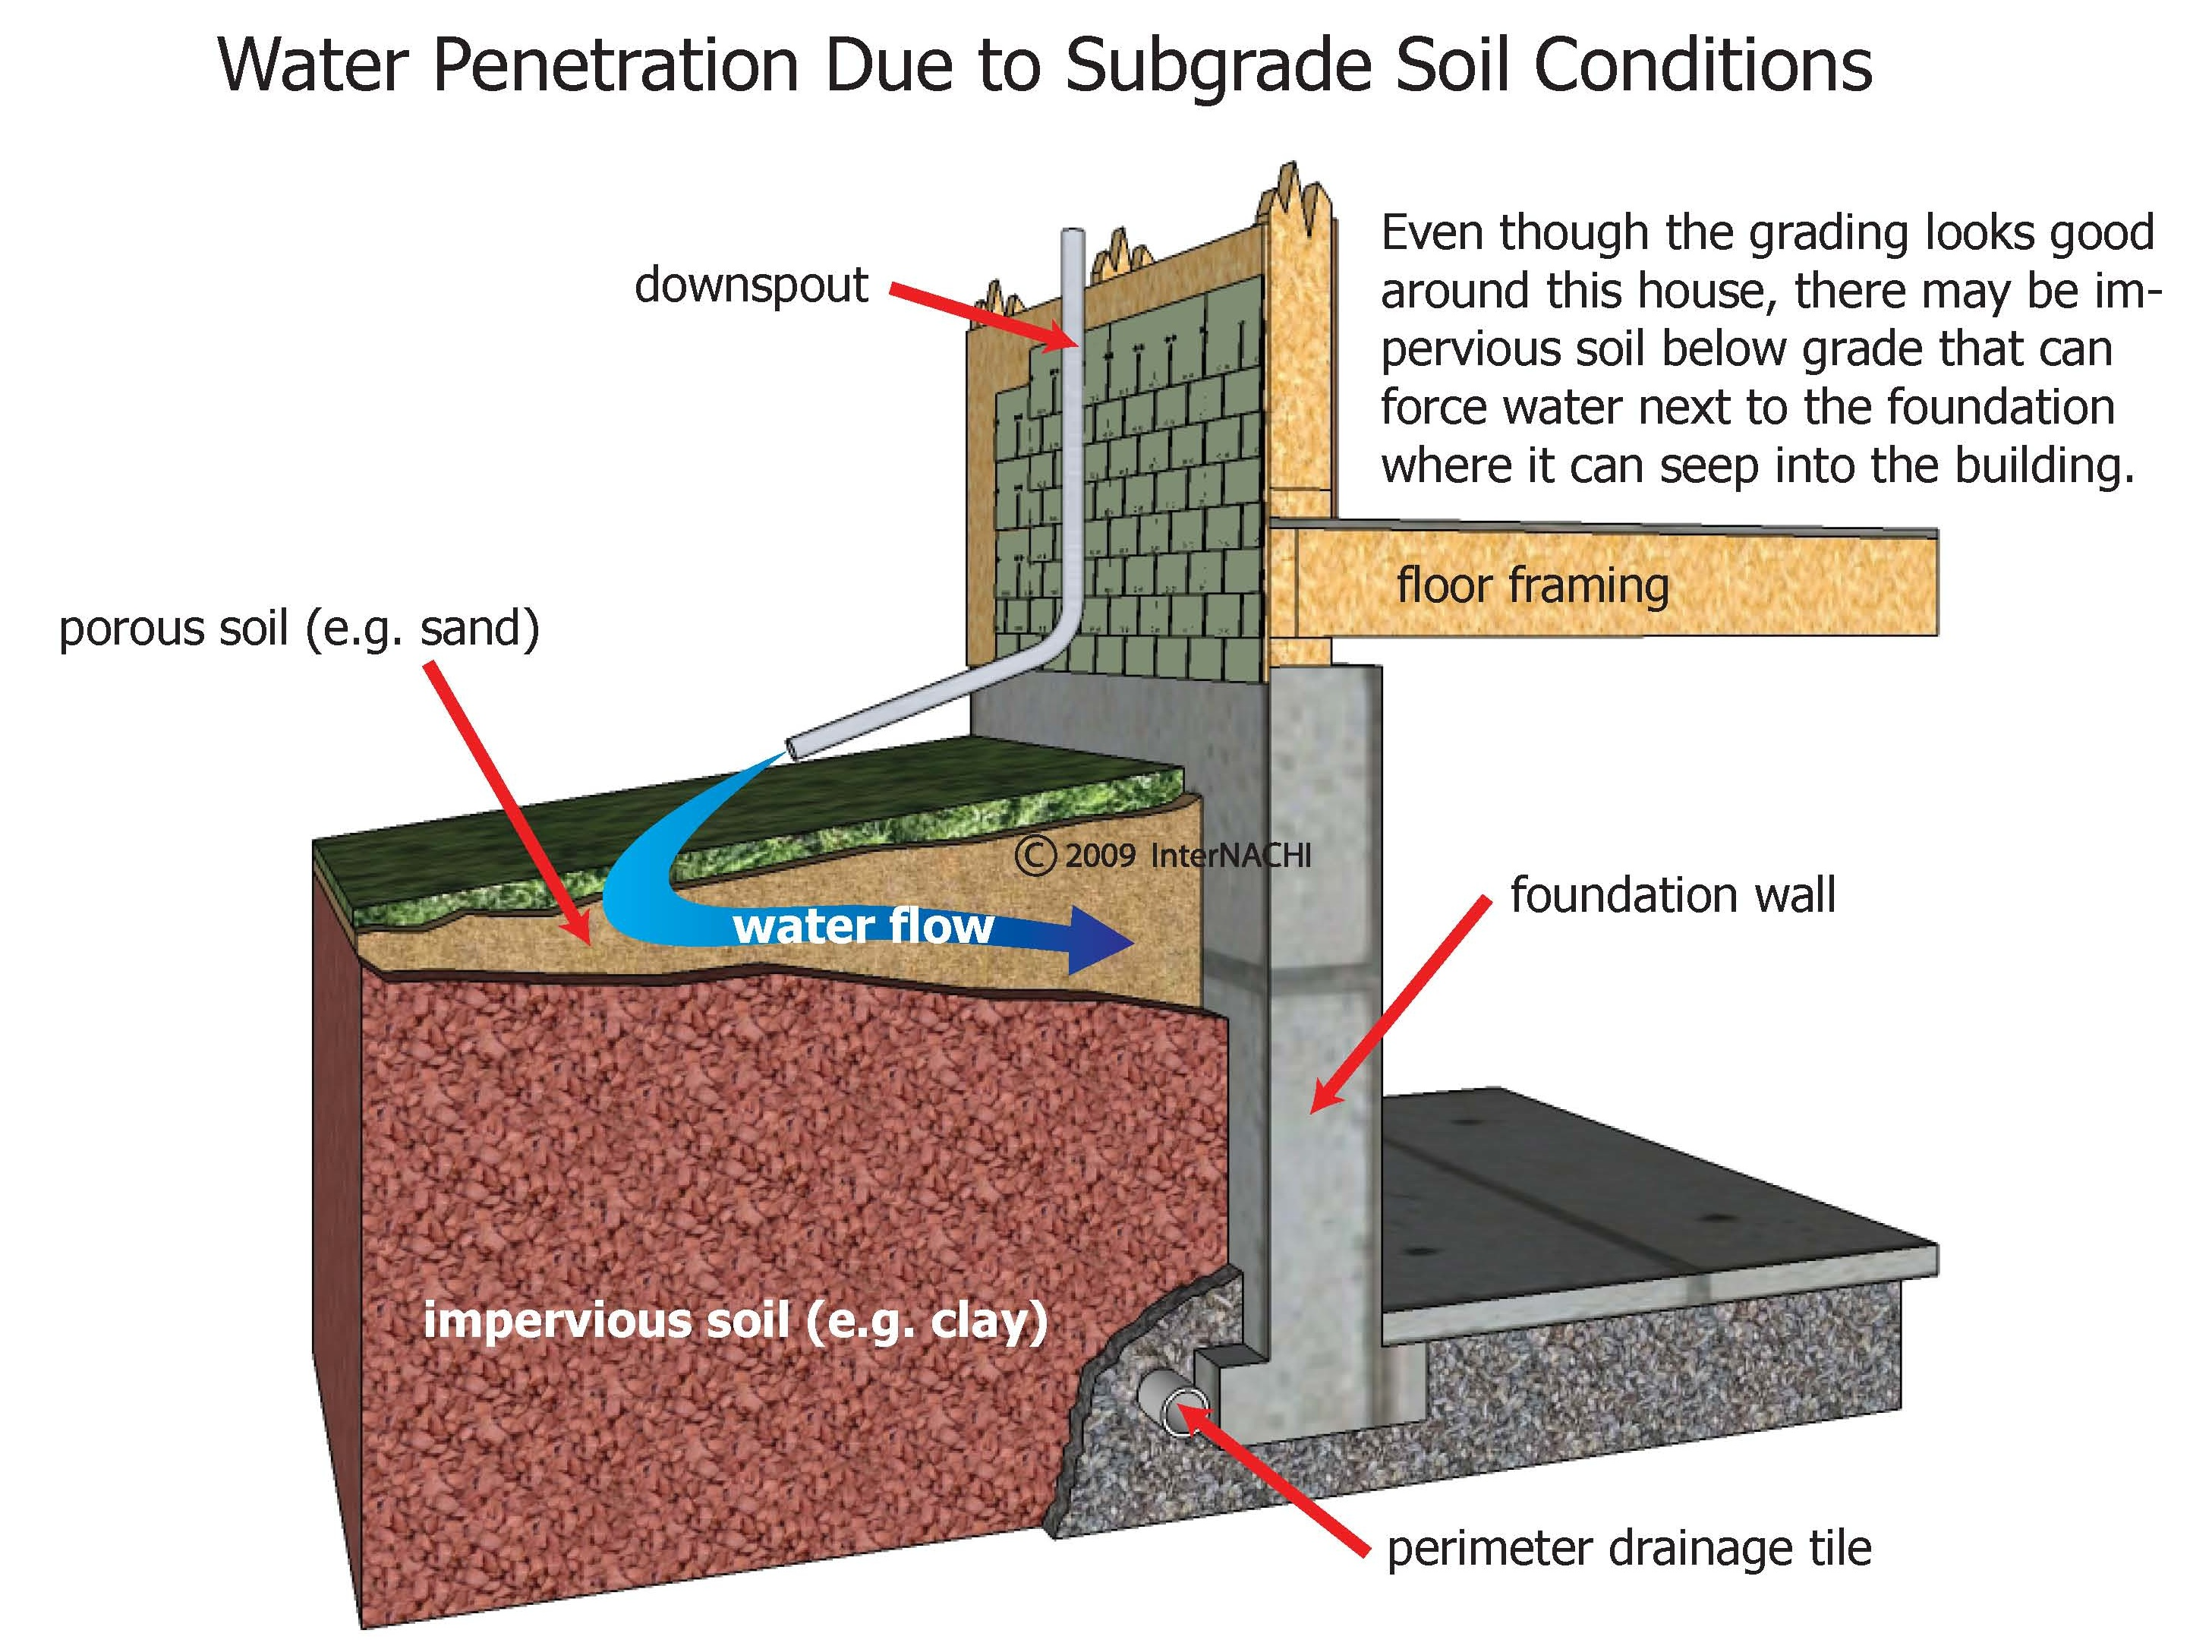 /uploads/images/hinh-anh/water-penetration-soil-conditions.jpg